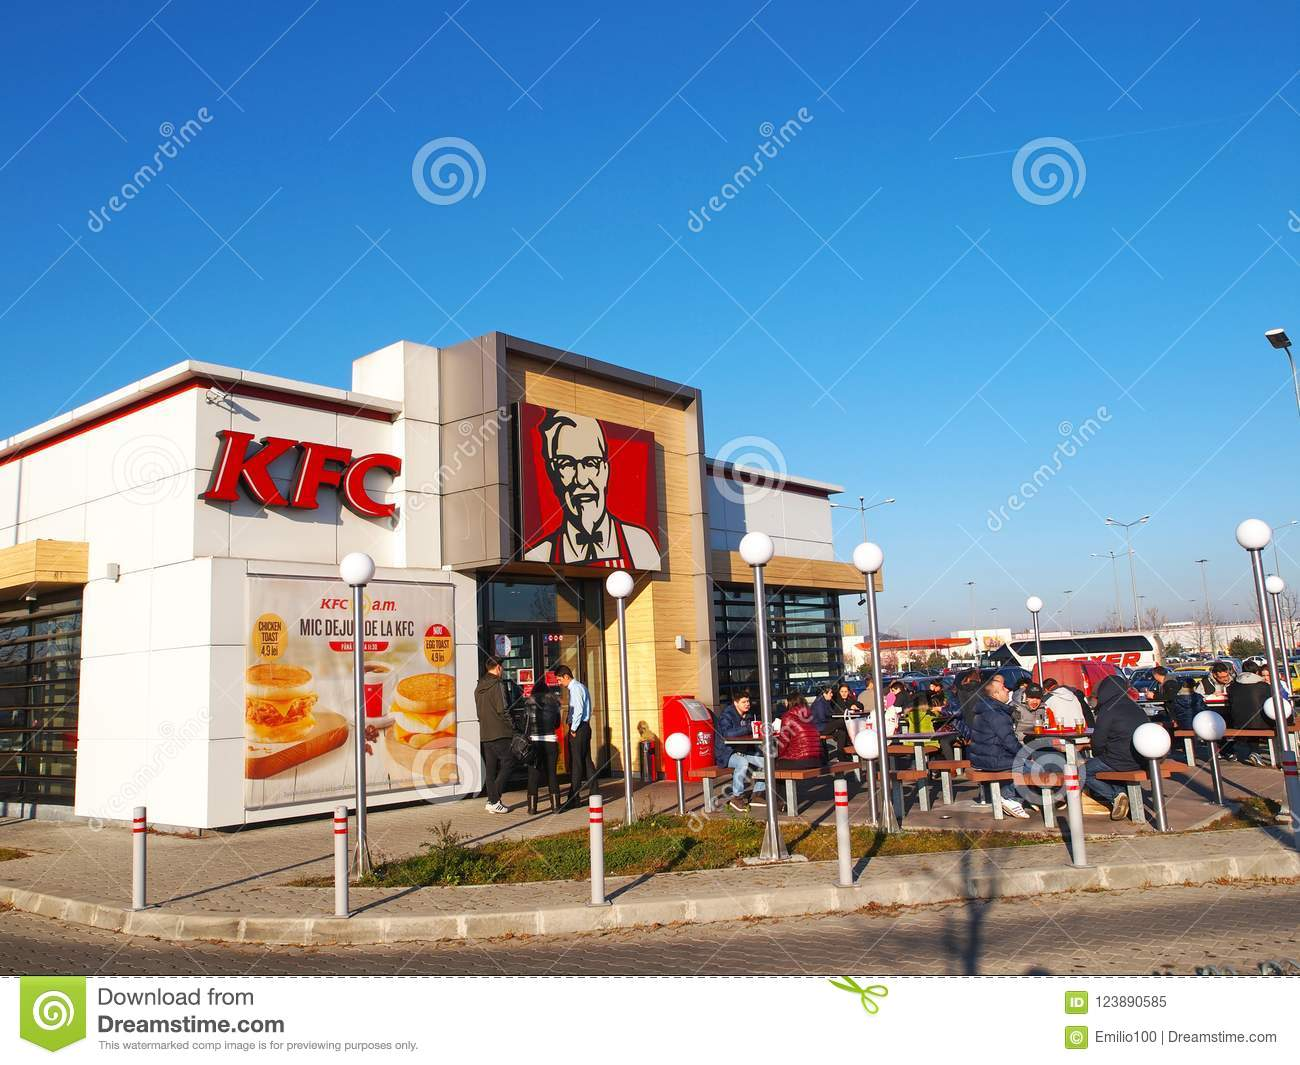 People Having Luch At Kentucky Fried Chicken Restaurant In